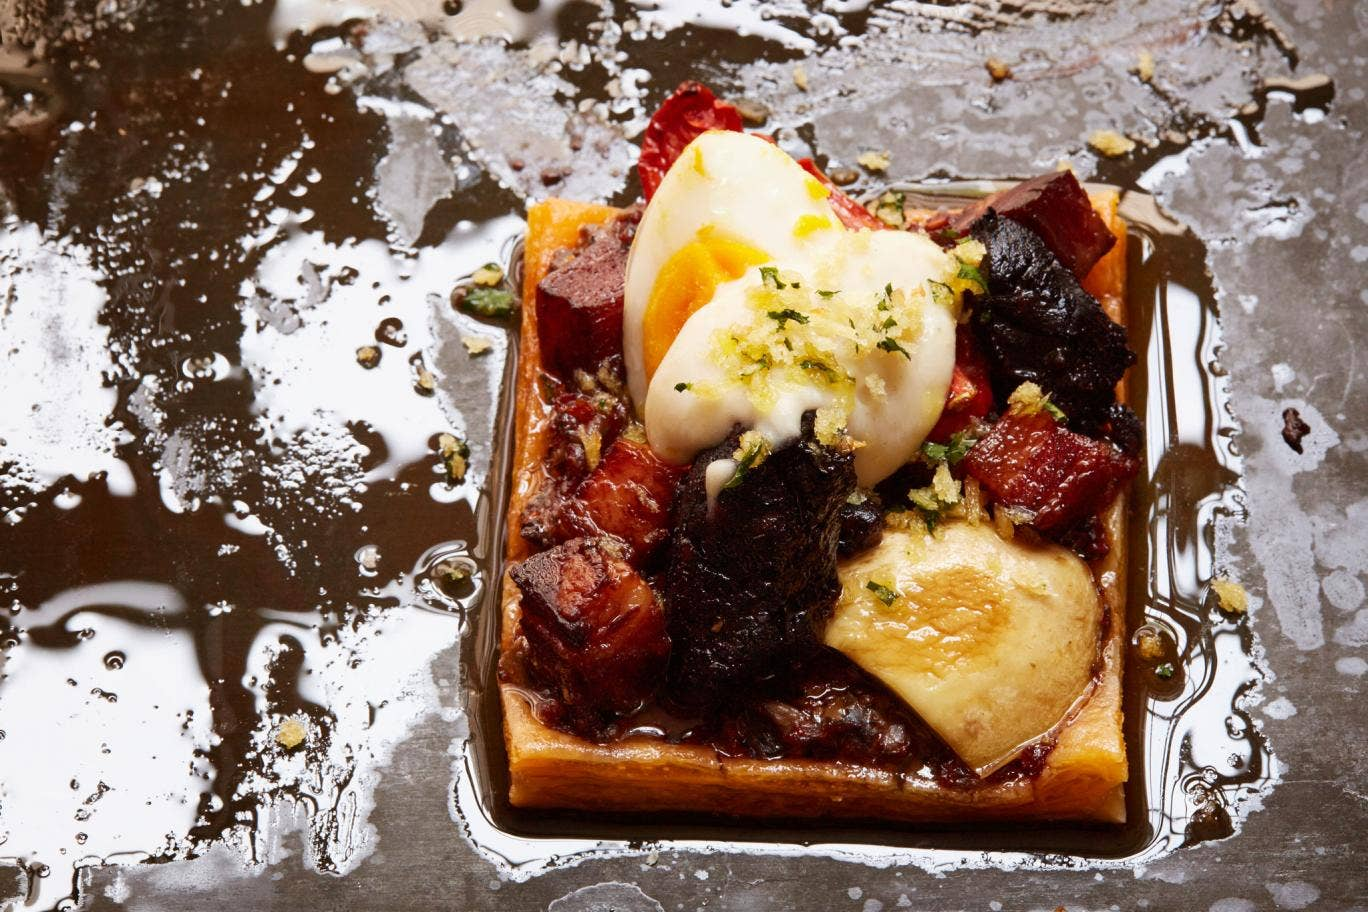 You can vary the topping on Mark's Full English tart